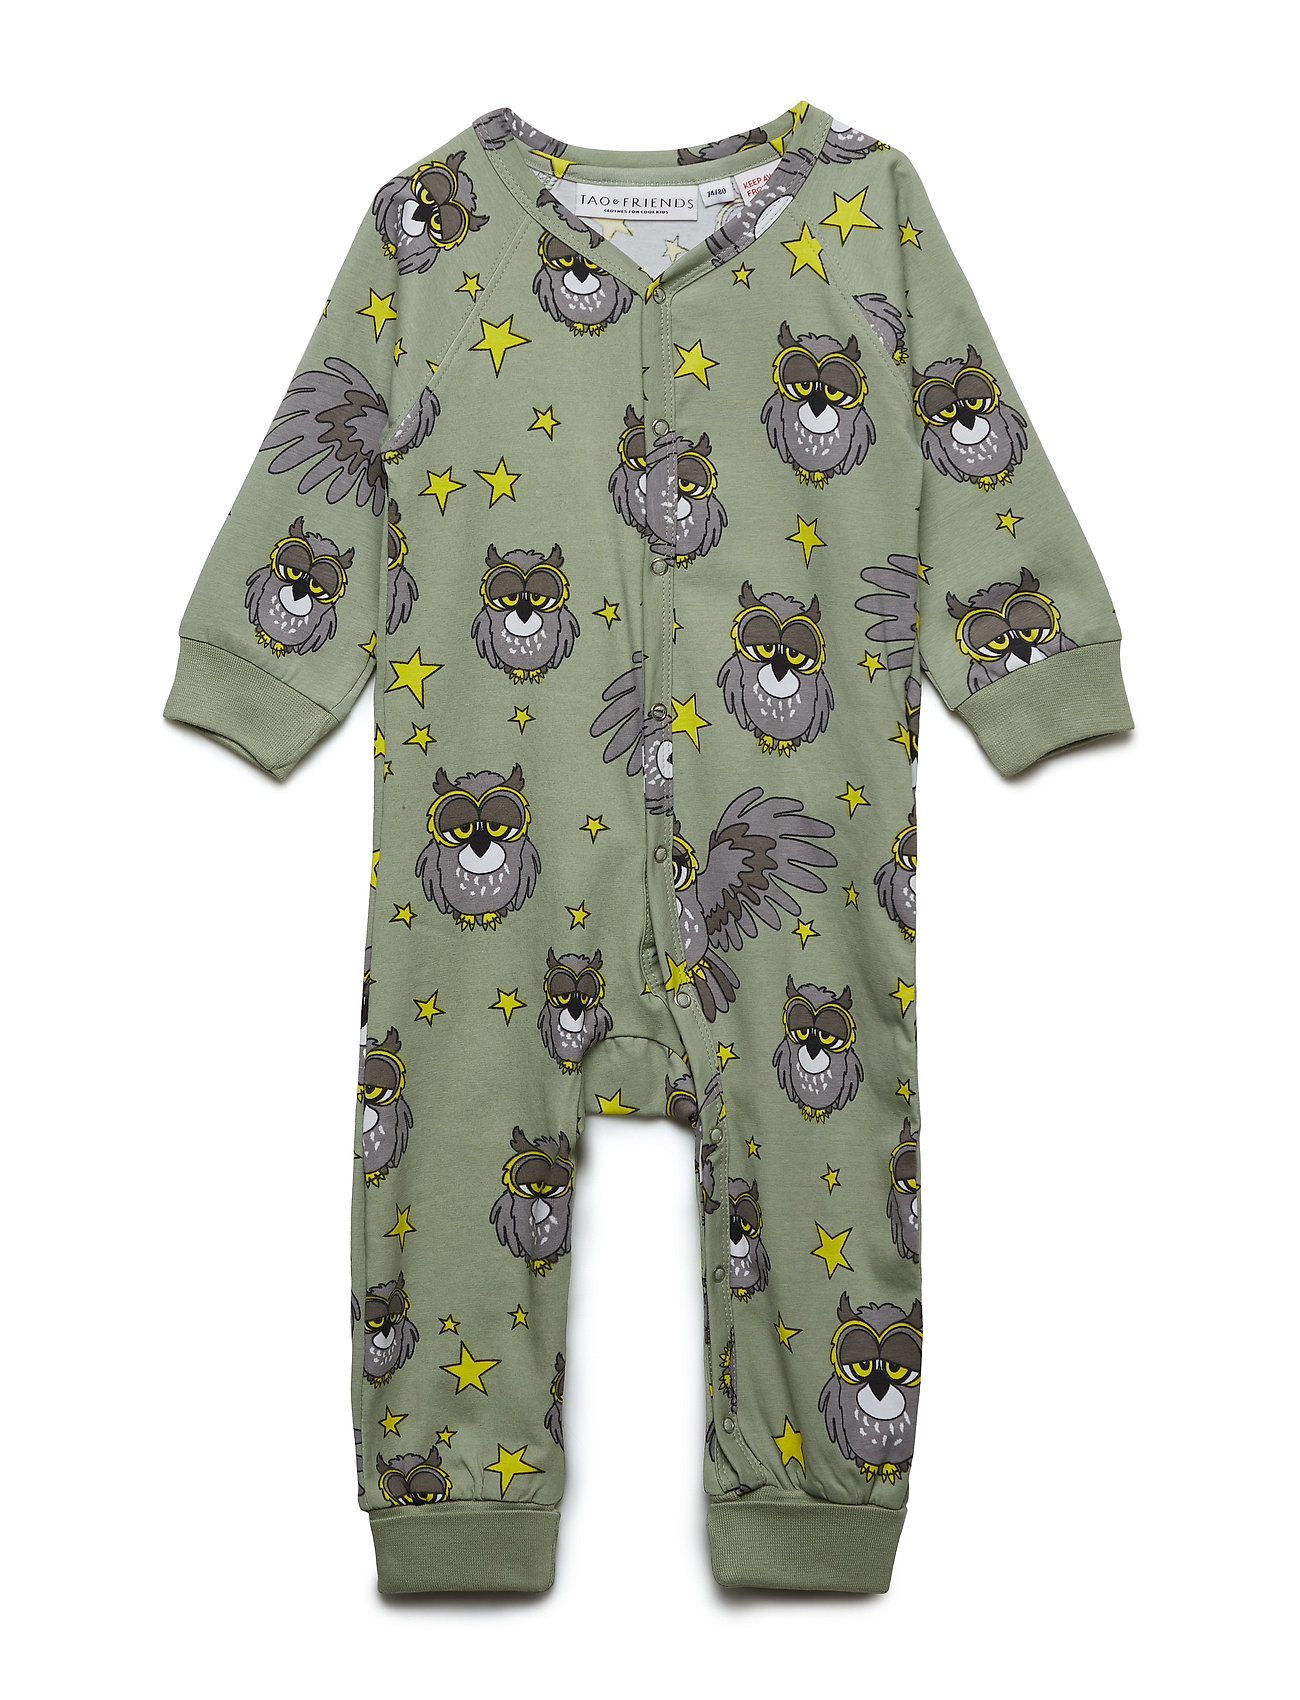 Tao & friends PJs One-piece UGGLAN - LIGHT GREEN